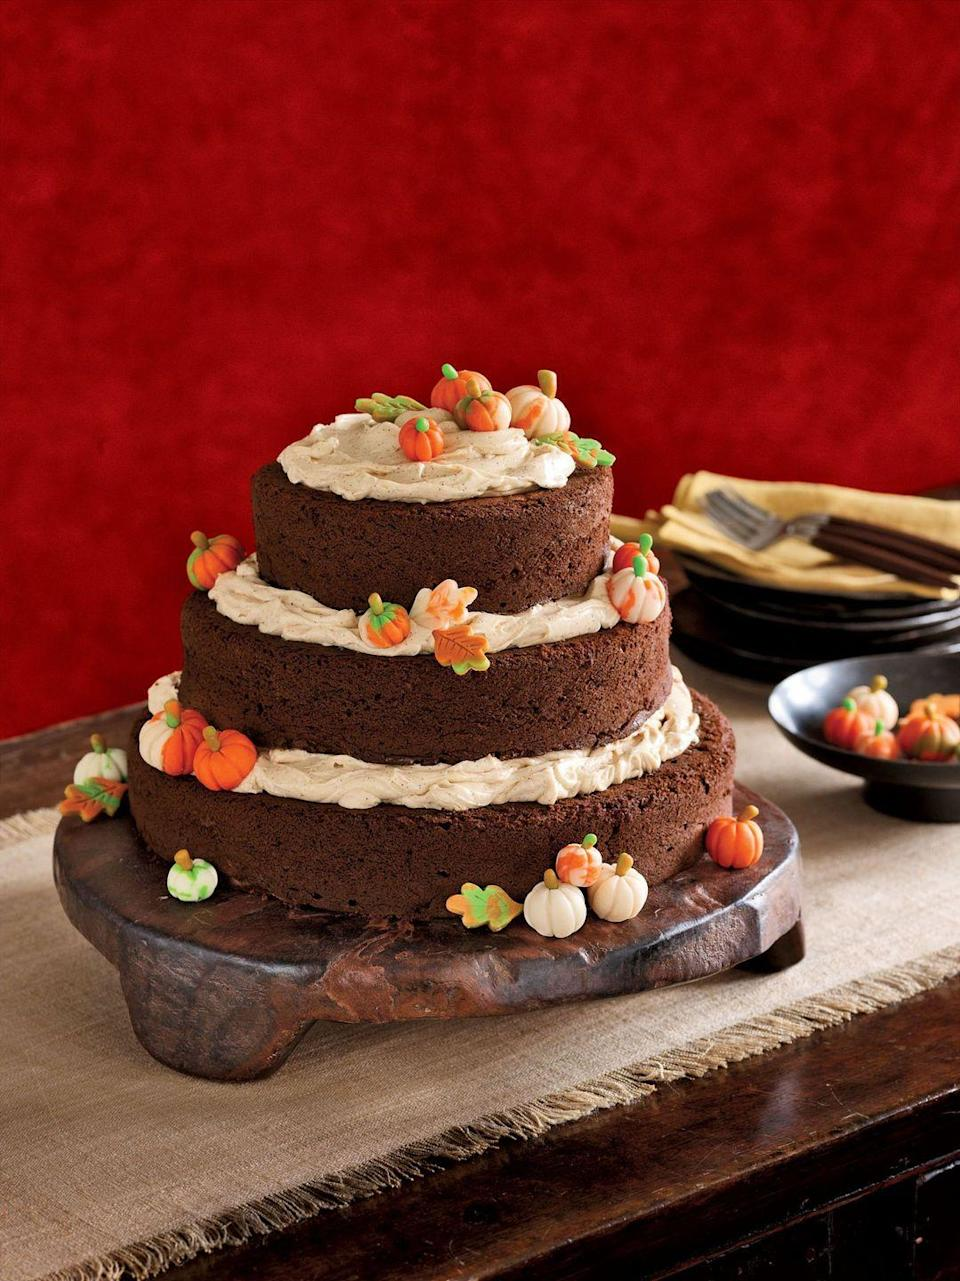 """<p>Three layers of tasty pumpkin spice cake topped with tiny adorable pumpkins? Your guests simply won't be able to resist.</p><p><em><a href=""""https://www.womansday.com/food-recipes/food-drinks/recipes/a13686/pumpkin-spice-cake-3559/"""" rel=""""nofollow noopener"""" target=""""_blank"""" data-ylk=""""slk:Get the recipe for Layered Pumpkin Spice Cake"""" class=""""link rapid-noclick-resp"""">Get the recipe for Layered Pumpkin Spice Cake</a>.</em></p>"""